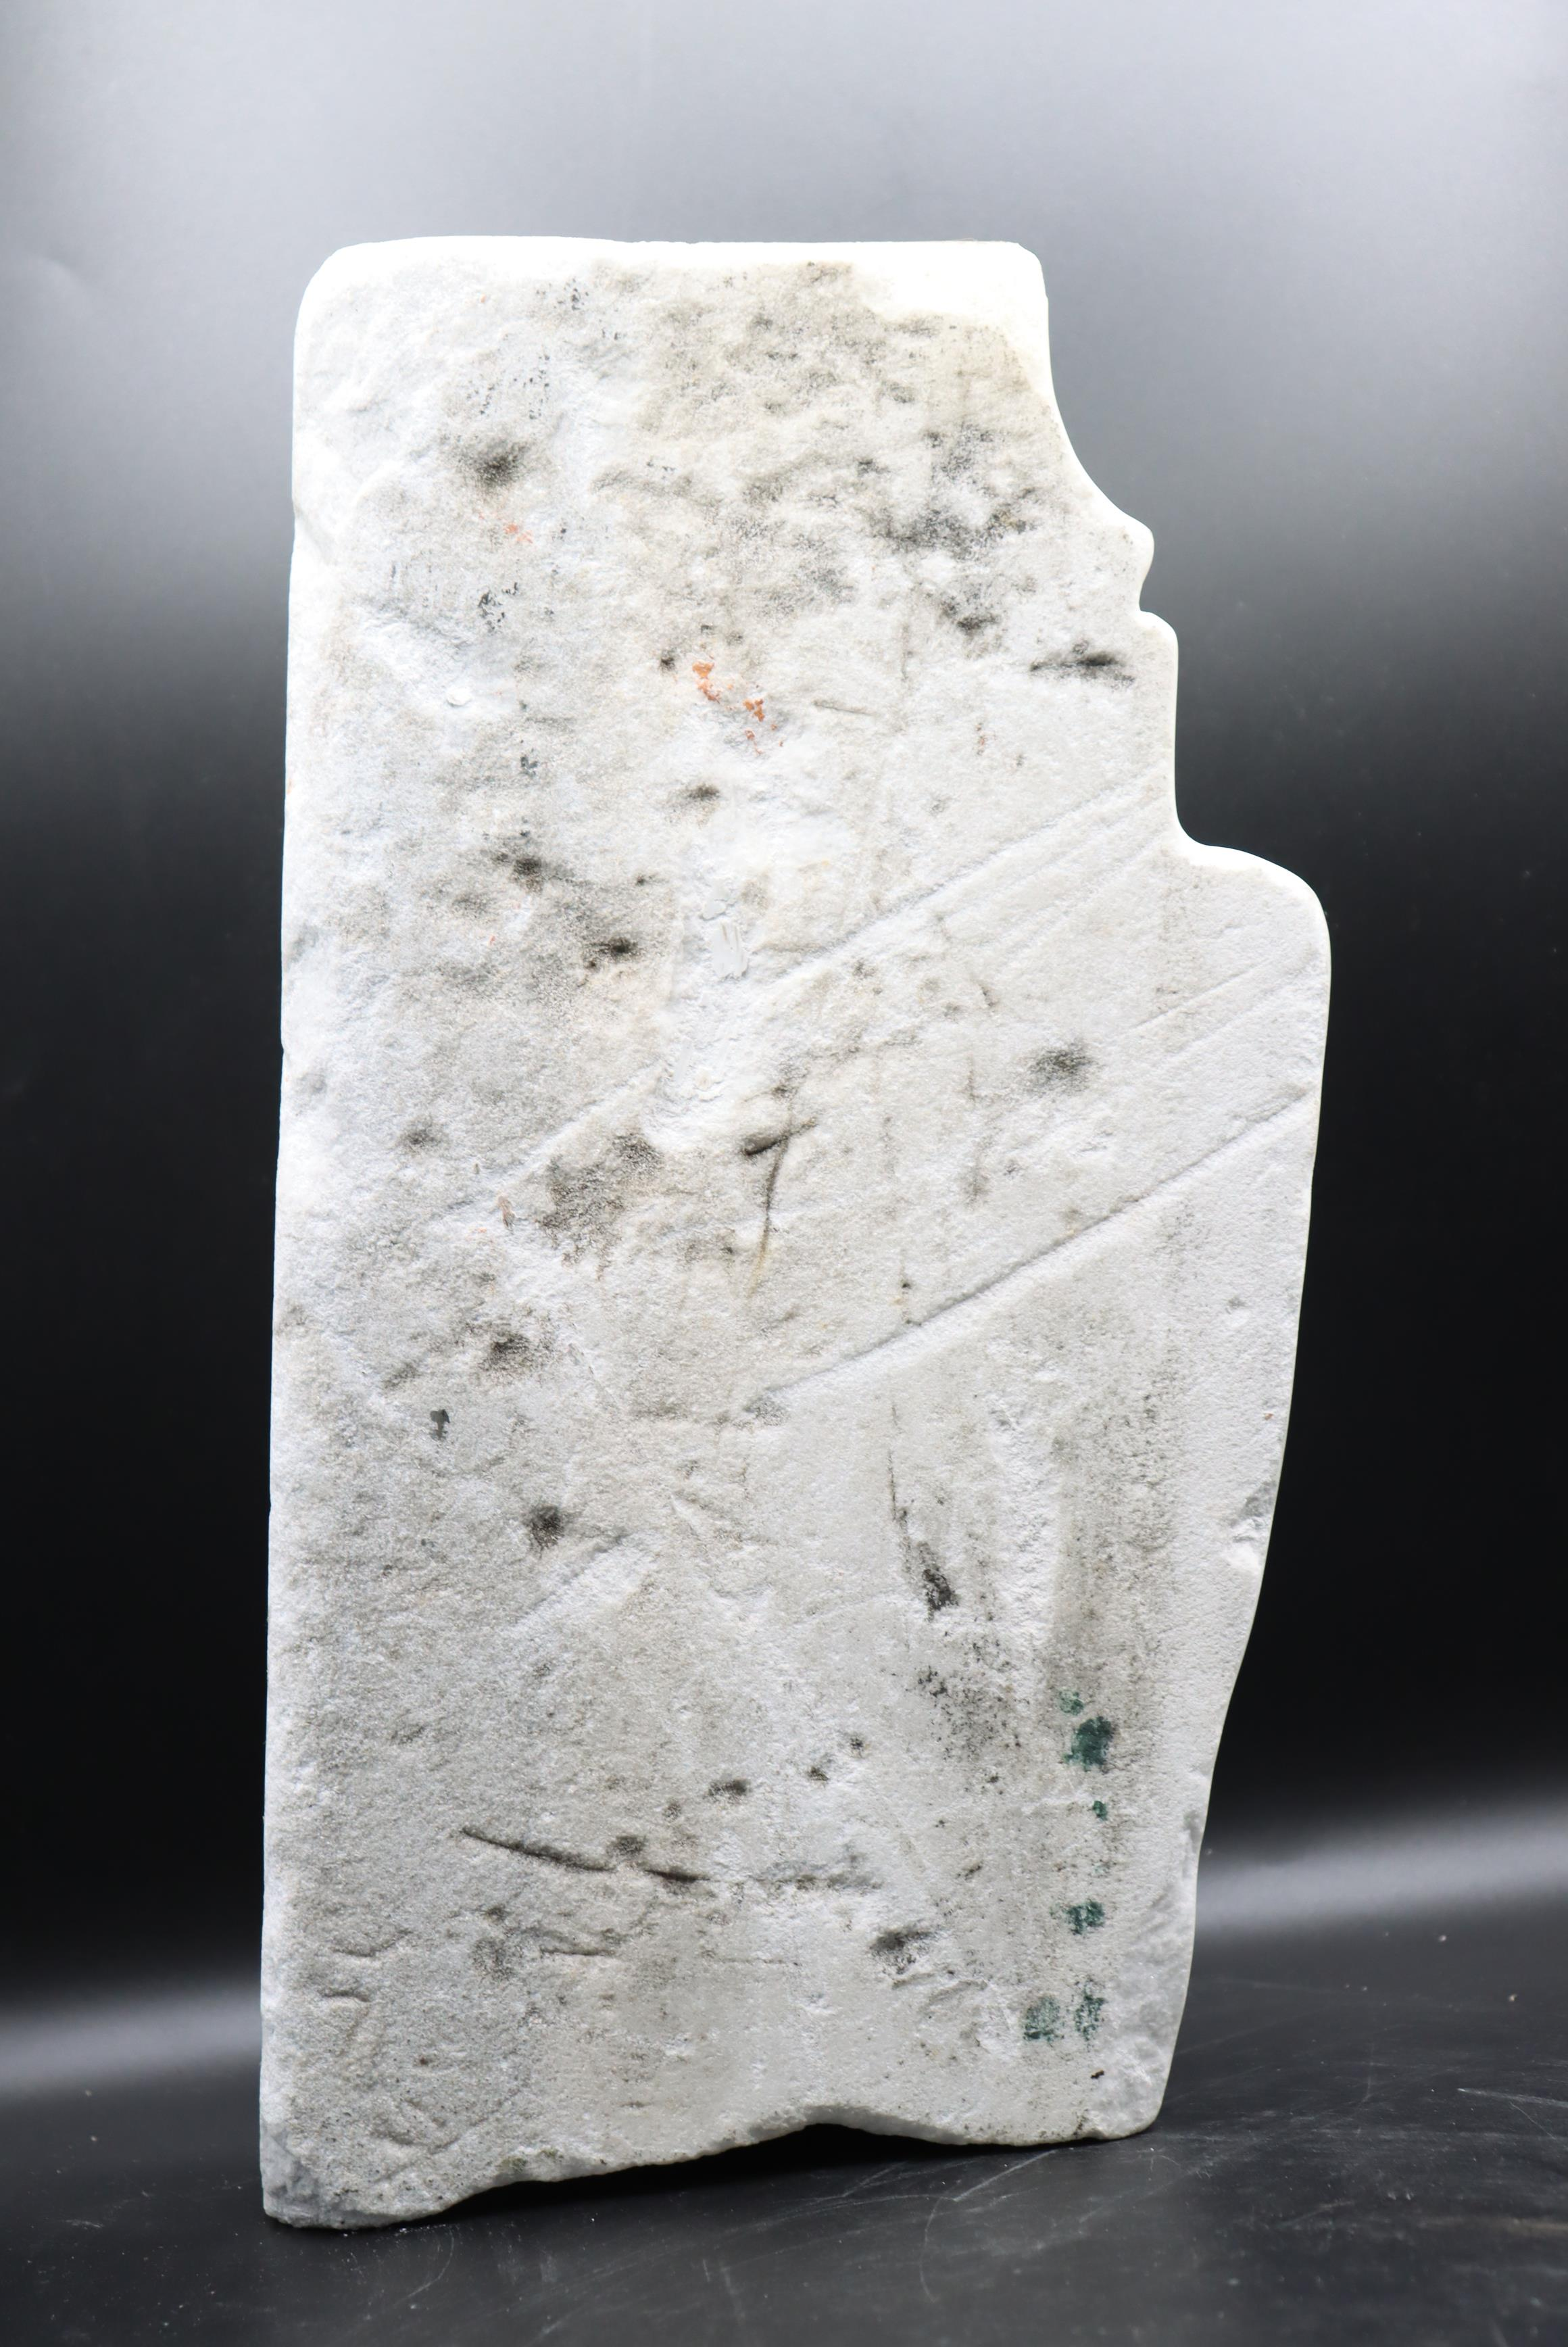 Abstract Marble Fragments of a Face - Image 9 of 9